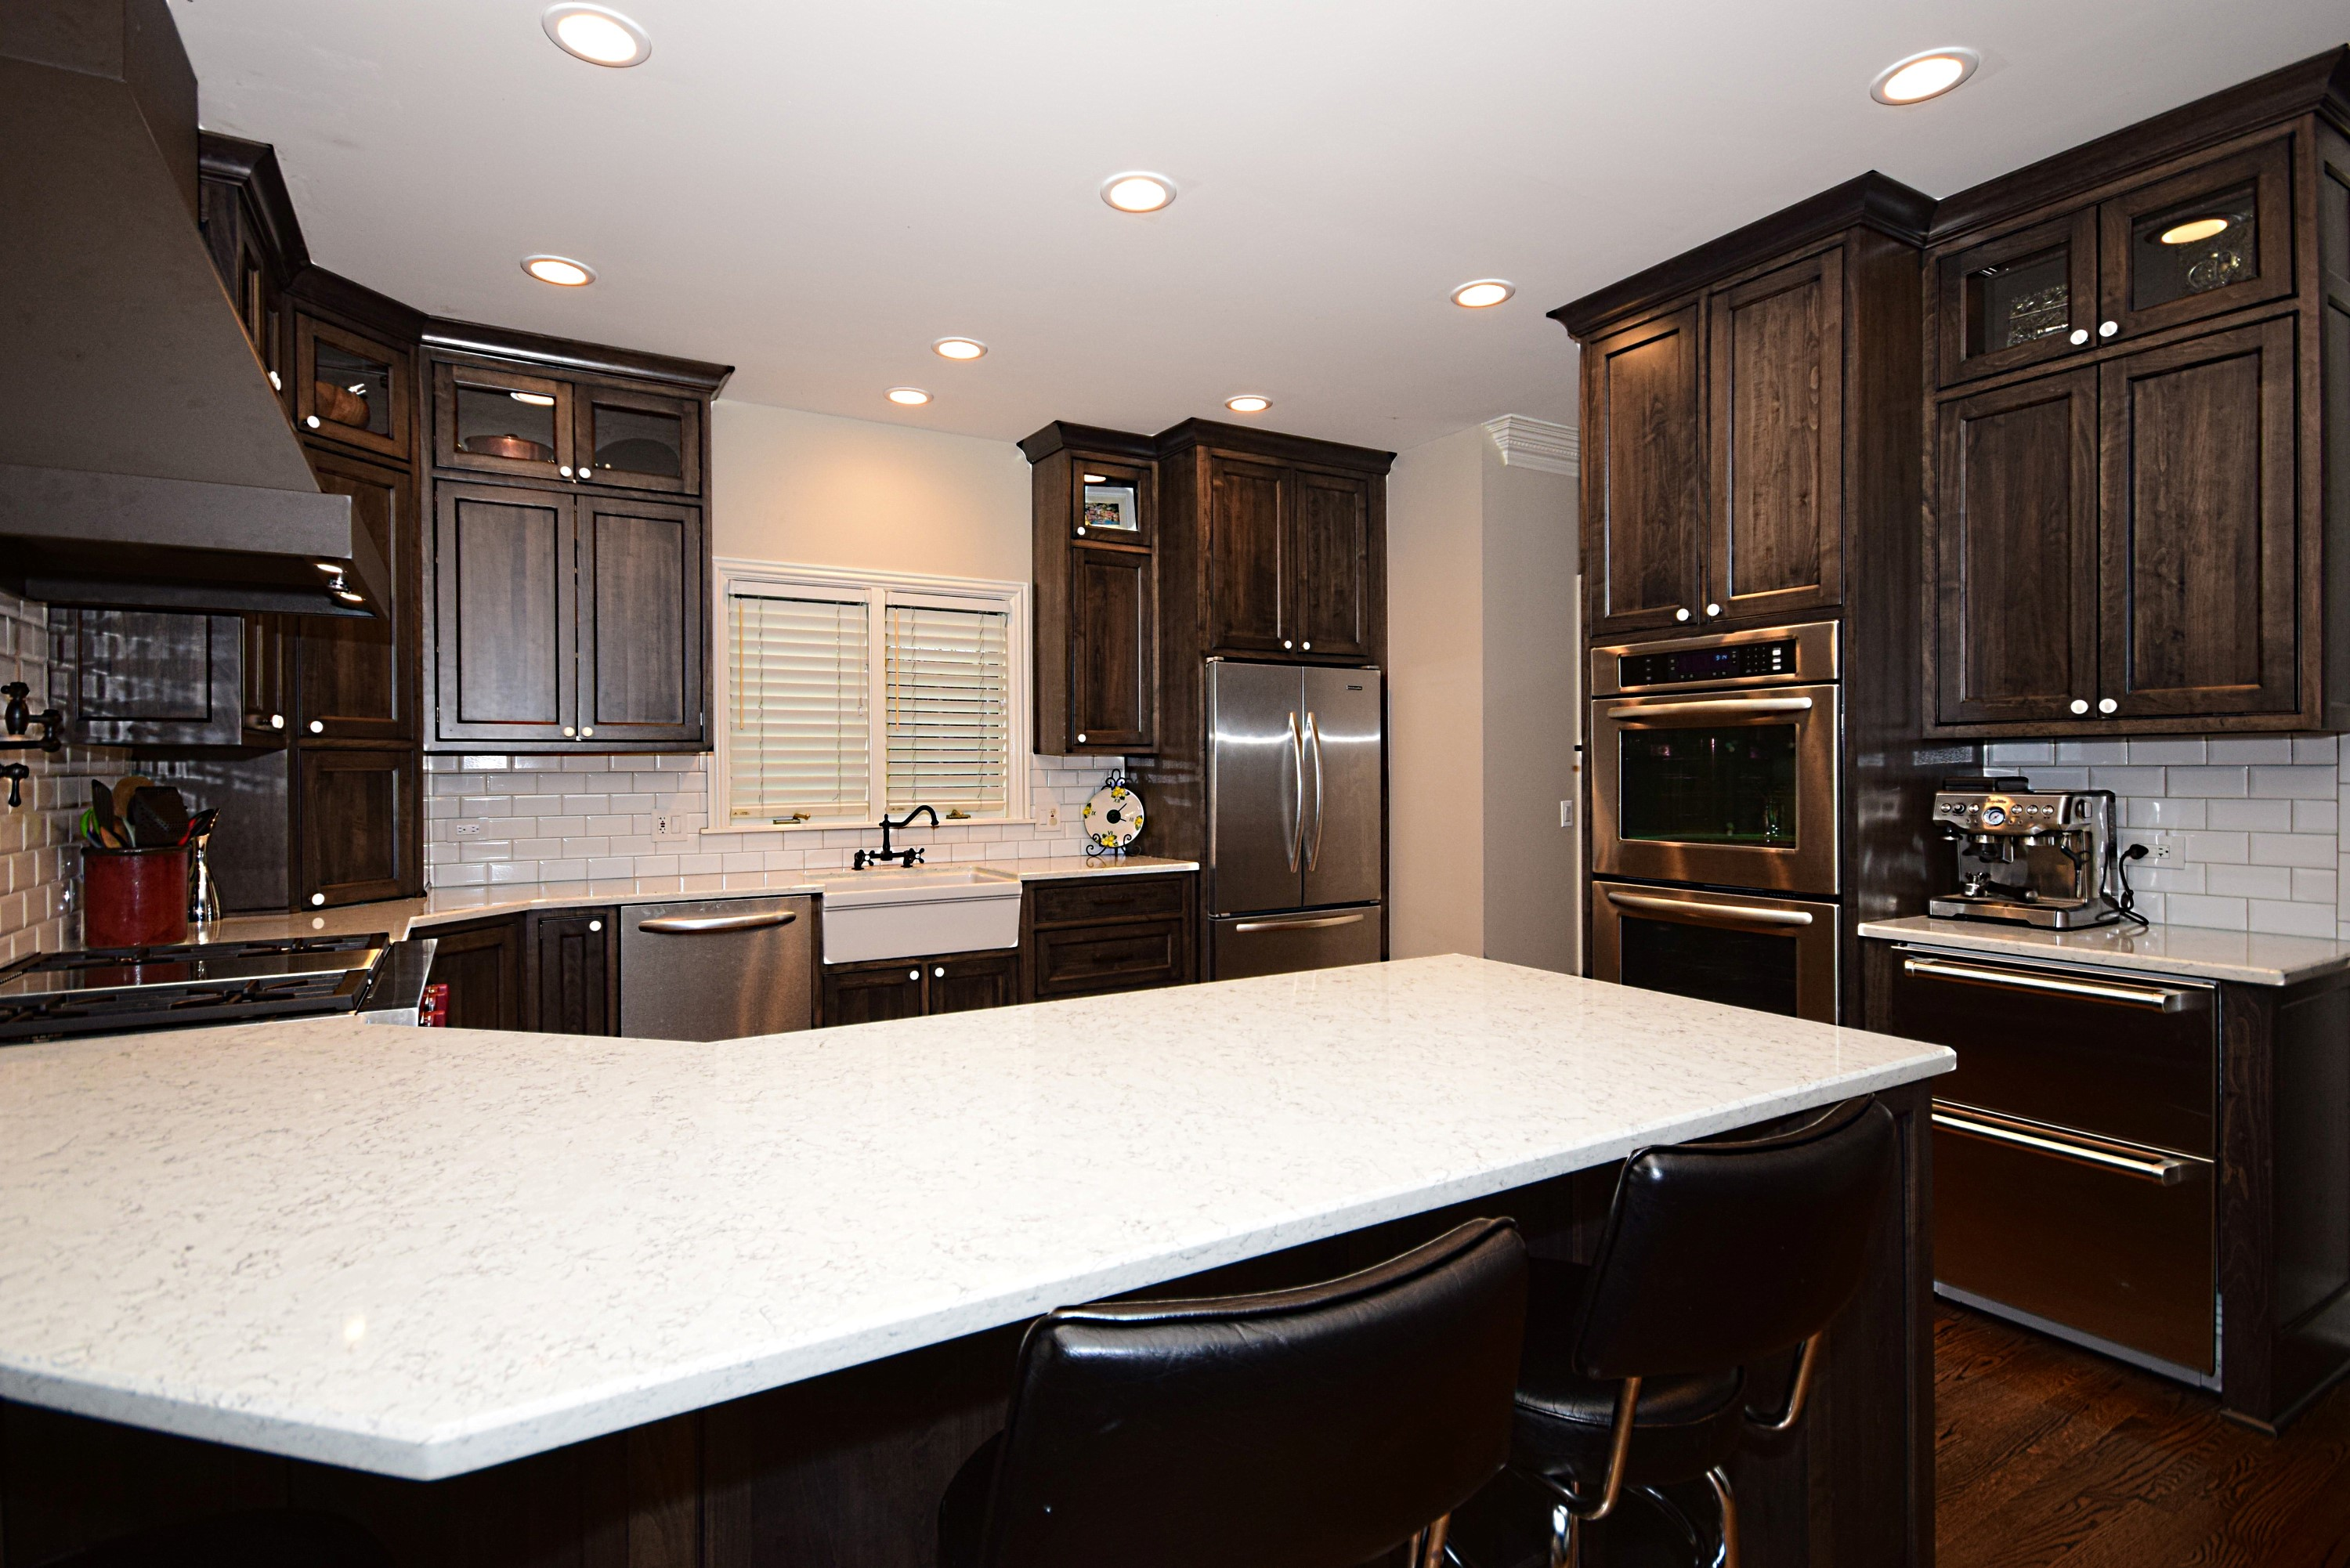 amish kitchen cabinets chicago gerber faucet pictures archive page 2 of 7 custom kitchens